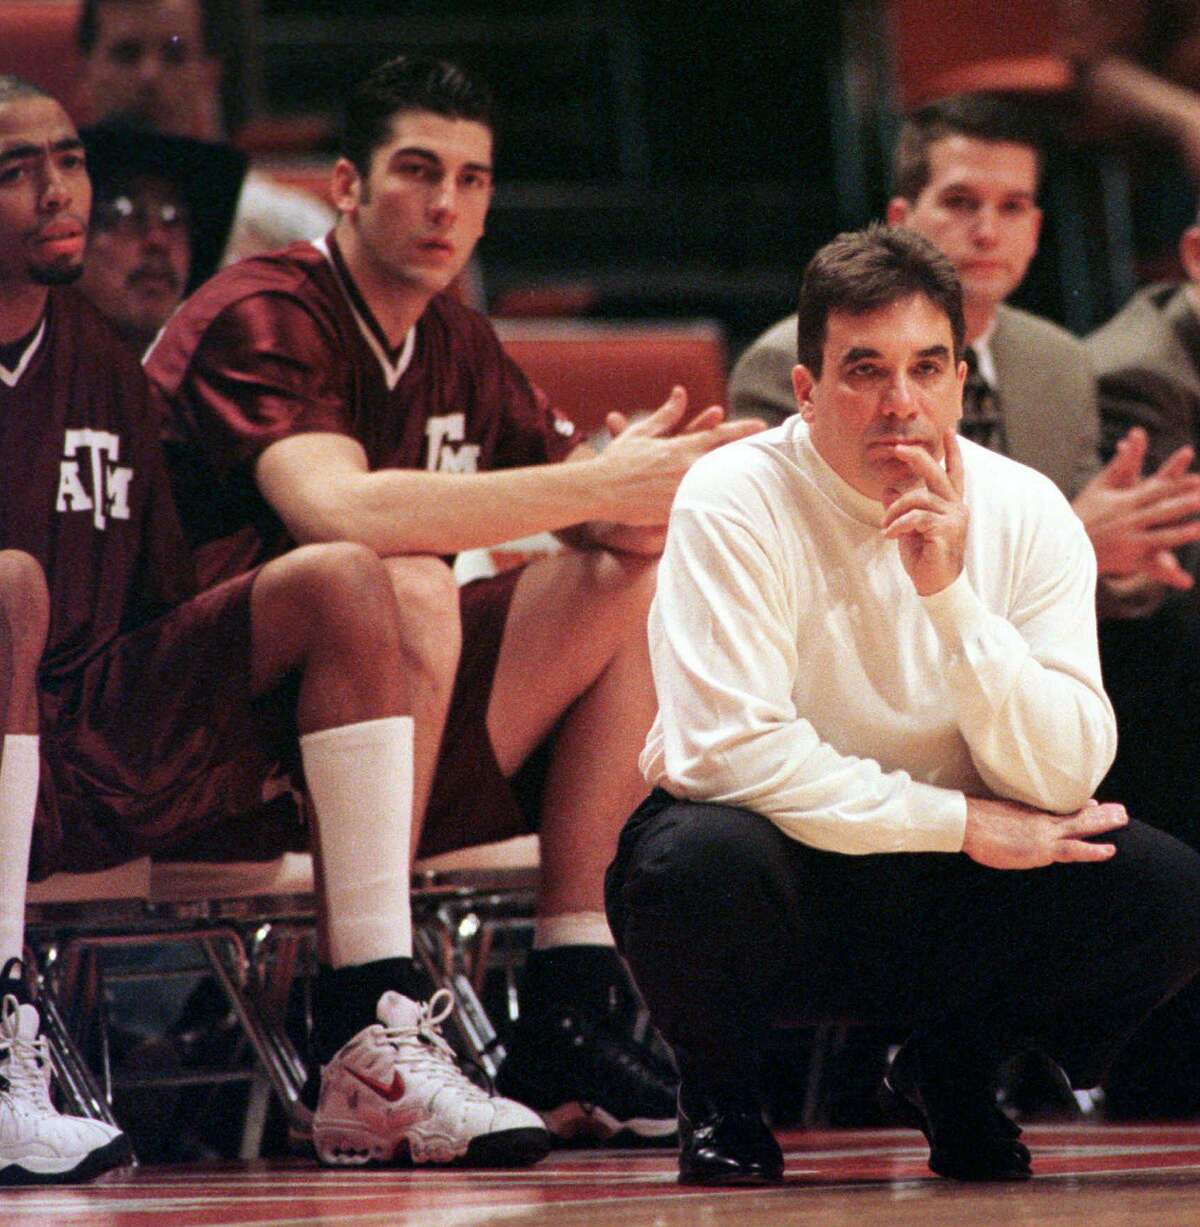 Texas A&M coach Tony Barone, front, watches his team's play during the first half against Texas on Wednesday, Feb. 18, 1998, in Austin, Texas. Texas won 87-74, giving the Aggies a 14-game losing streak and an 0-13 record in conference play. (AP Photo/George Bridges)